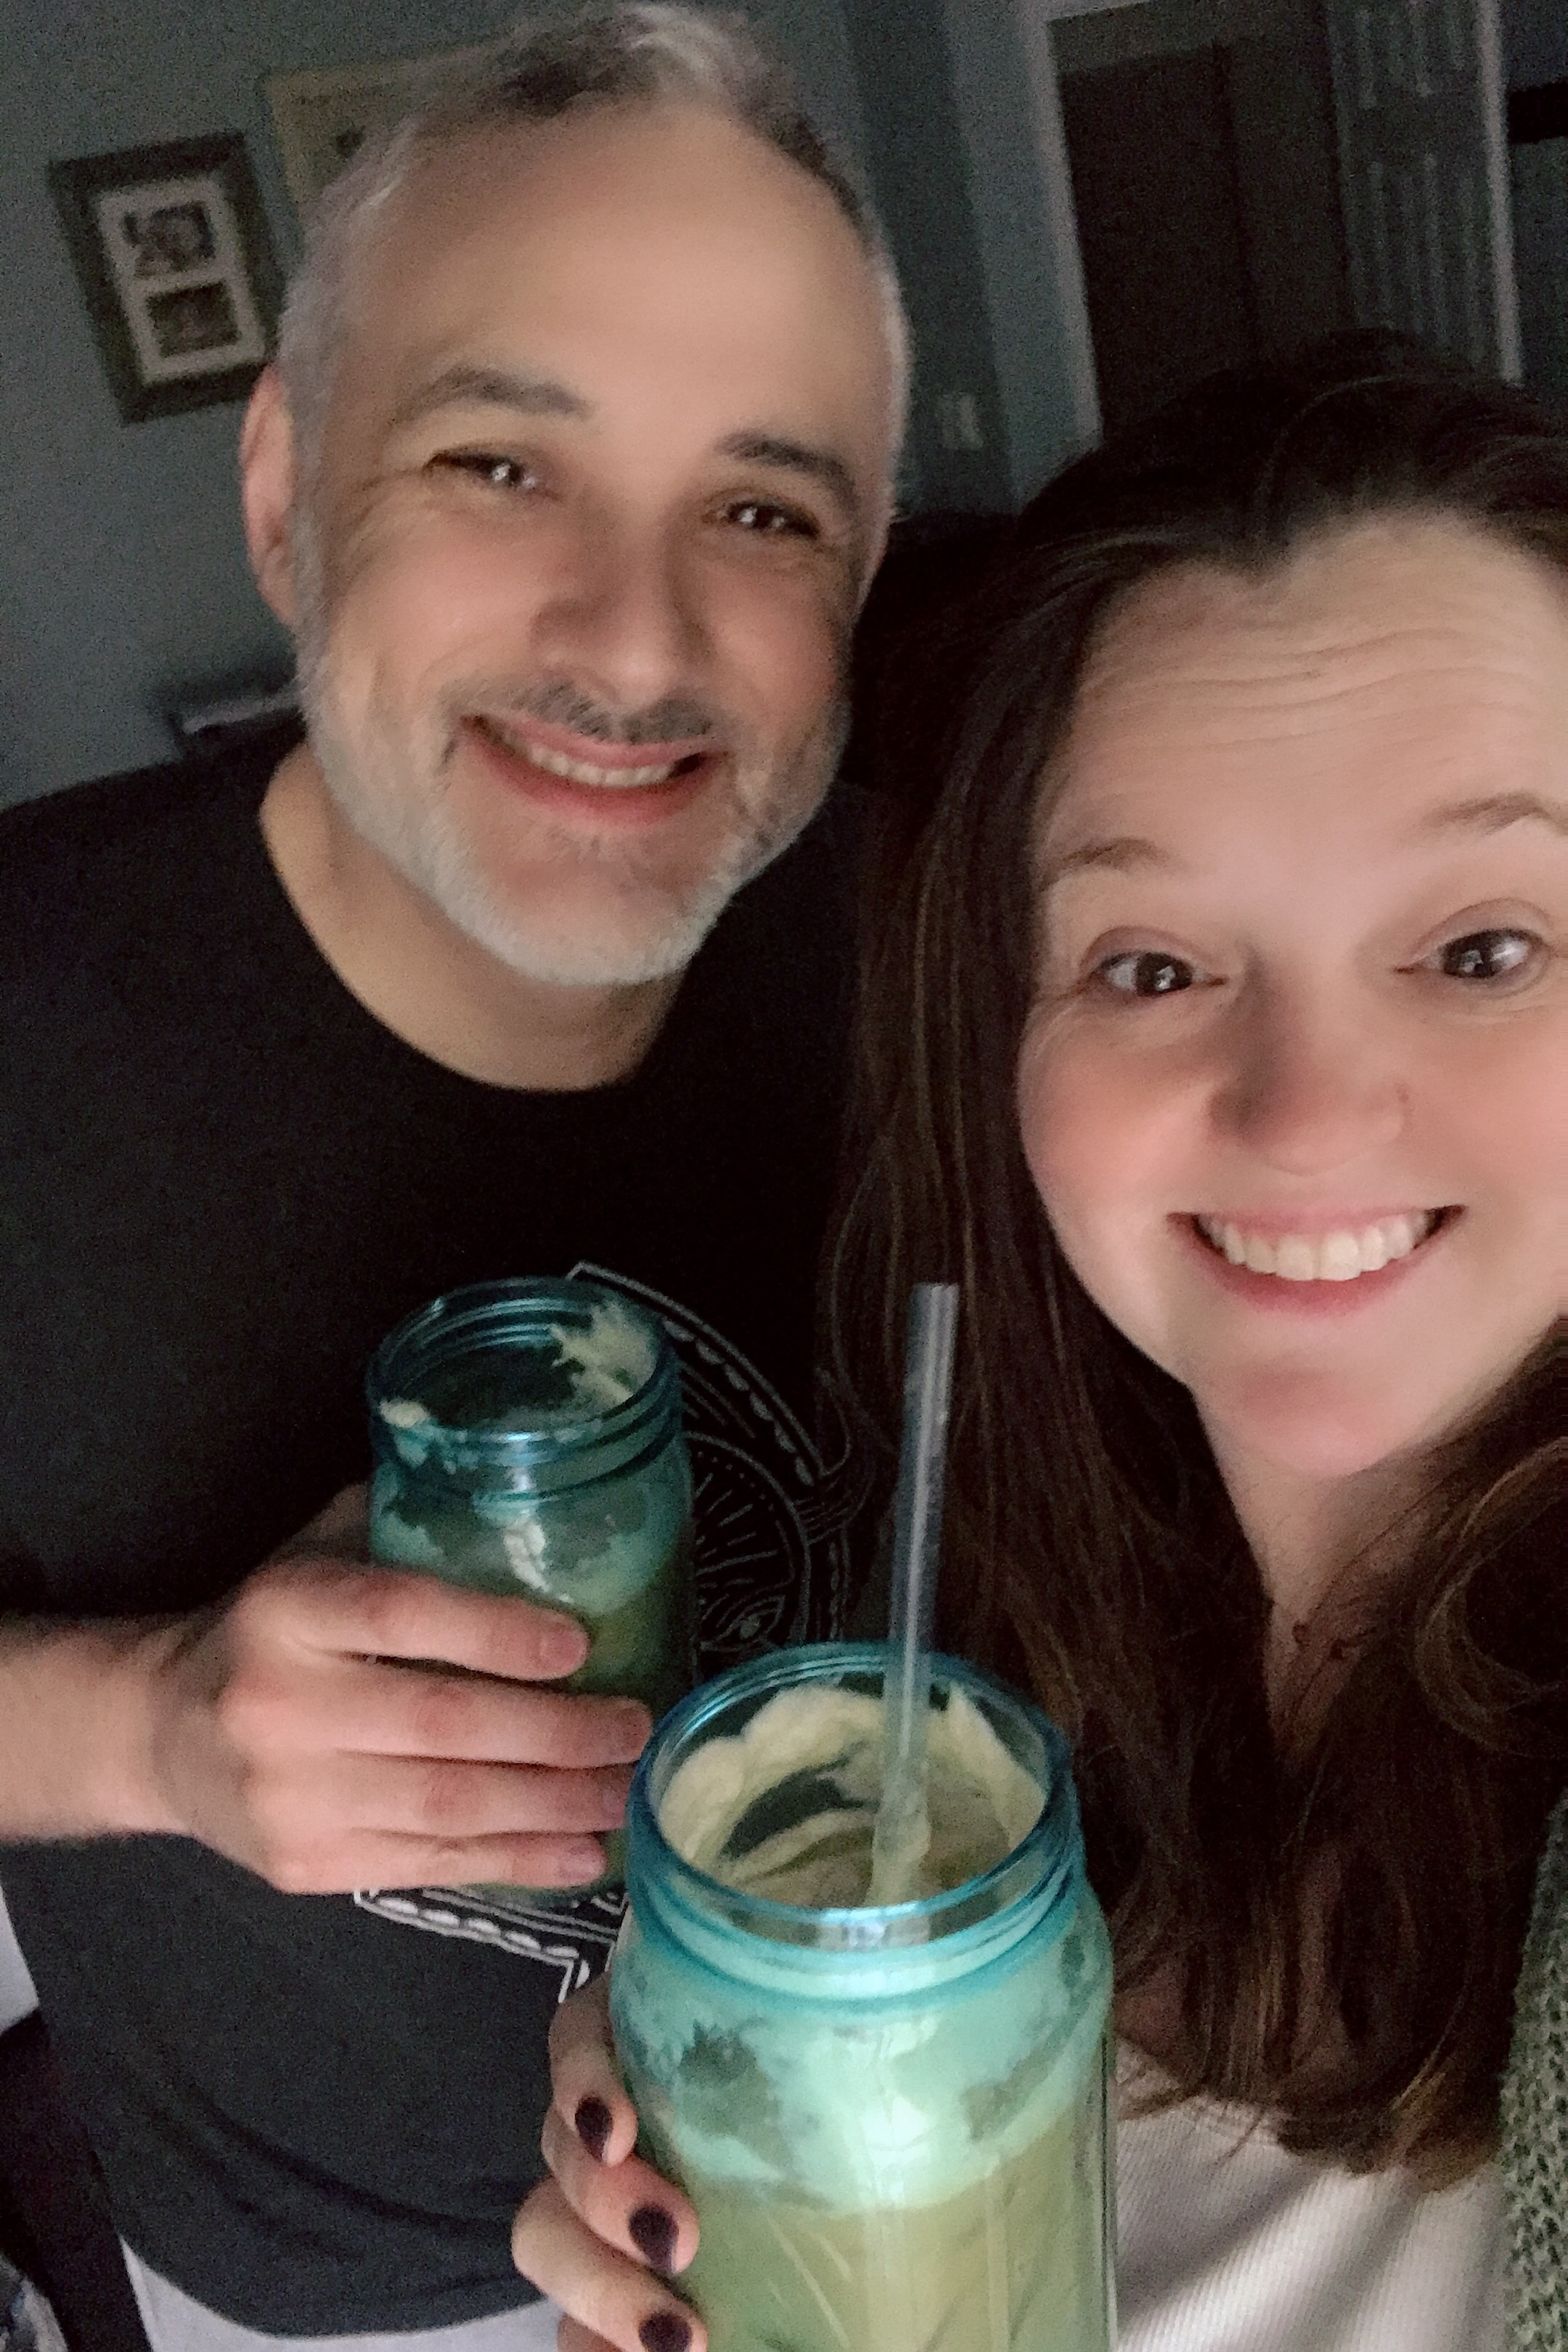 Iced Keto Coffee Recipe - She Got Guts